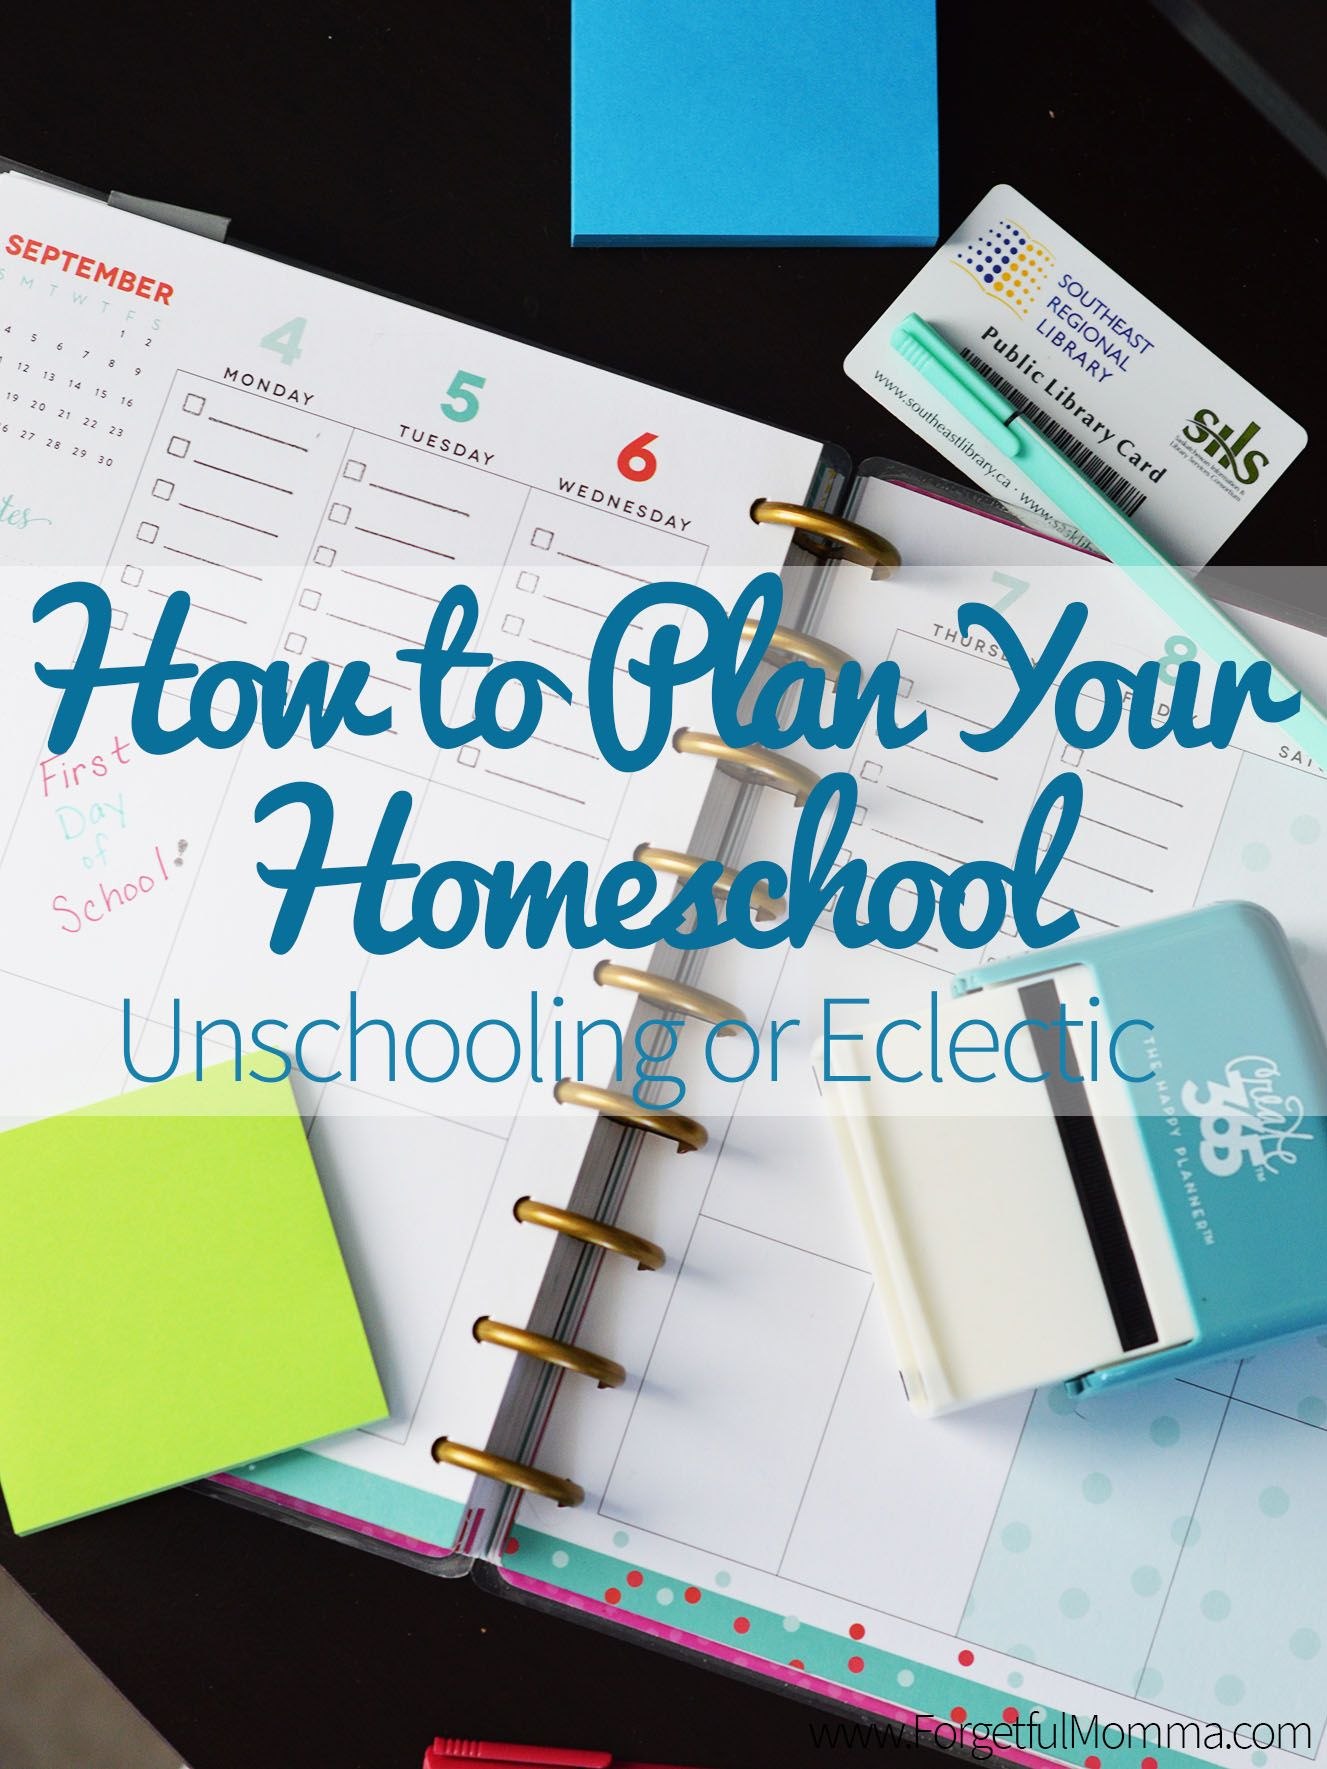 How to plan your homeschool unschooling or eclectic